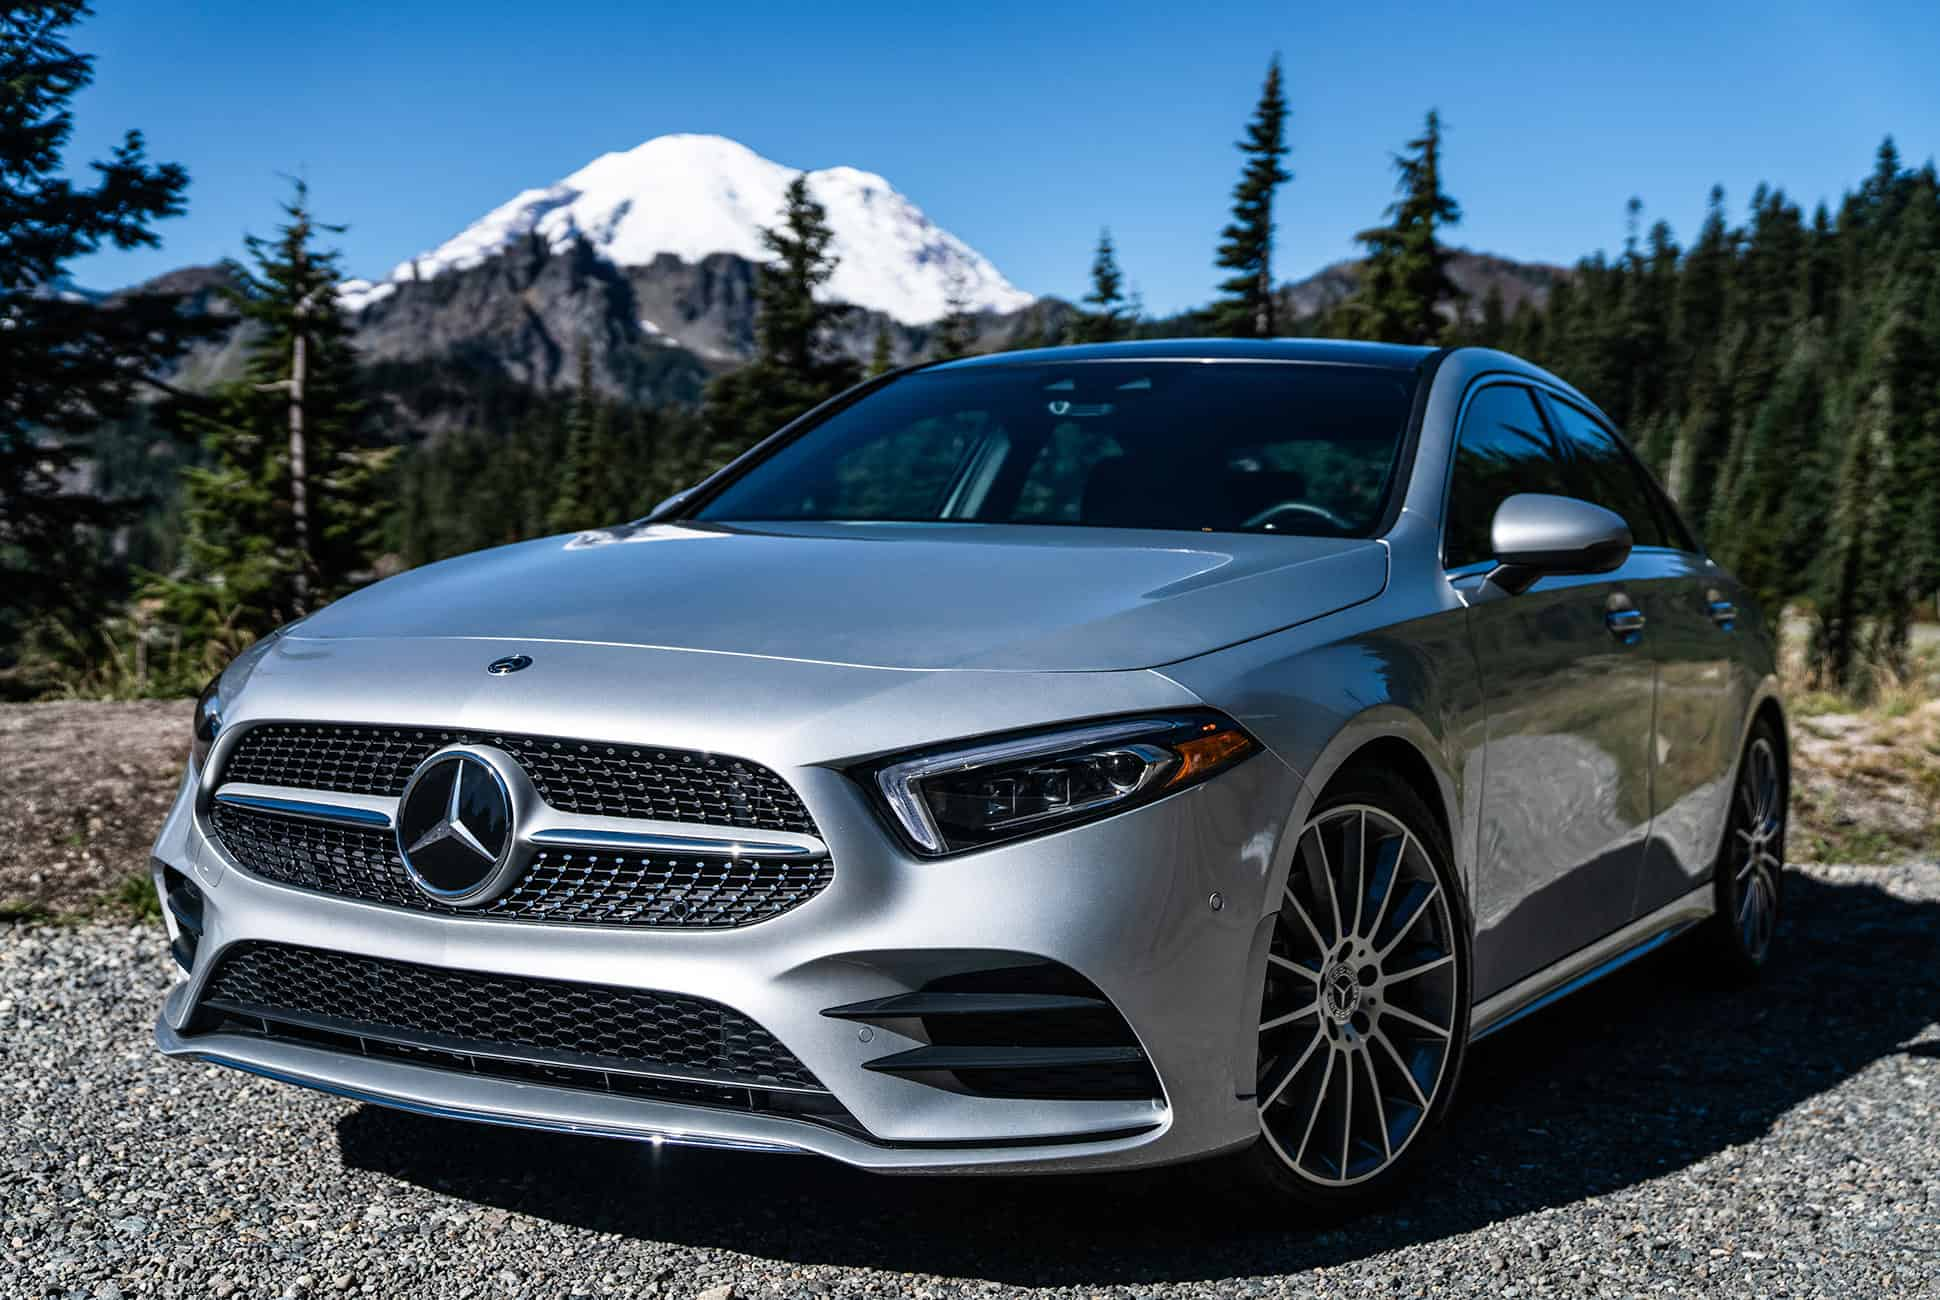 52 A Mercedes A Class 2019 Price Images